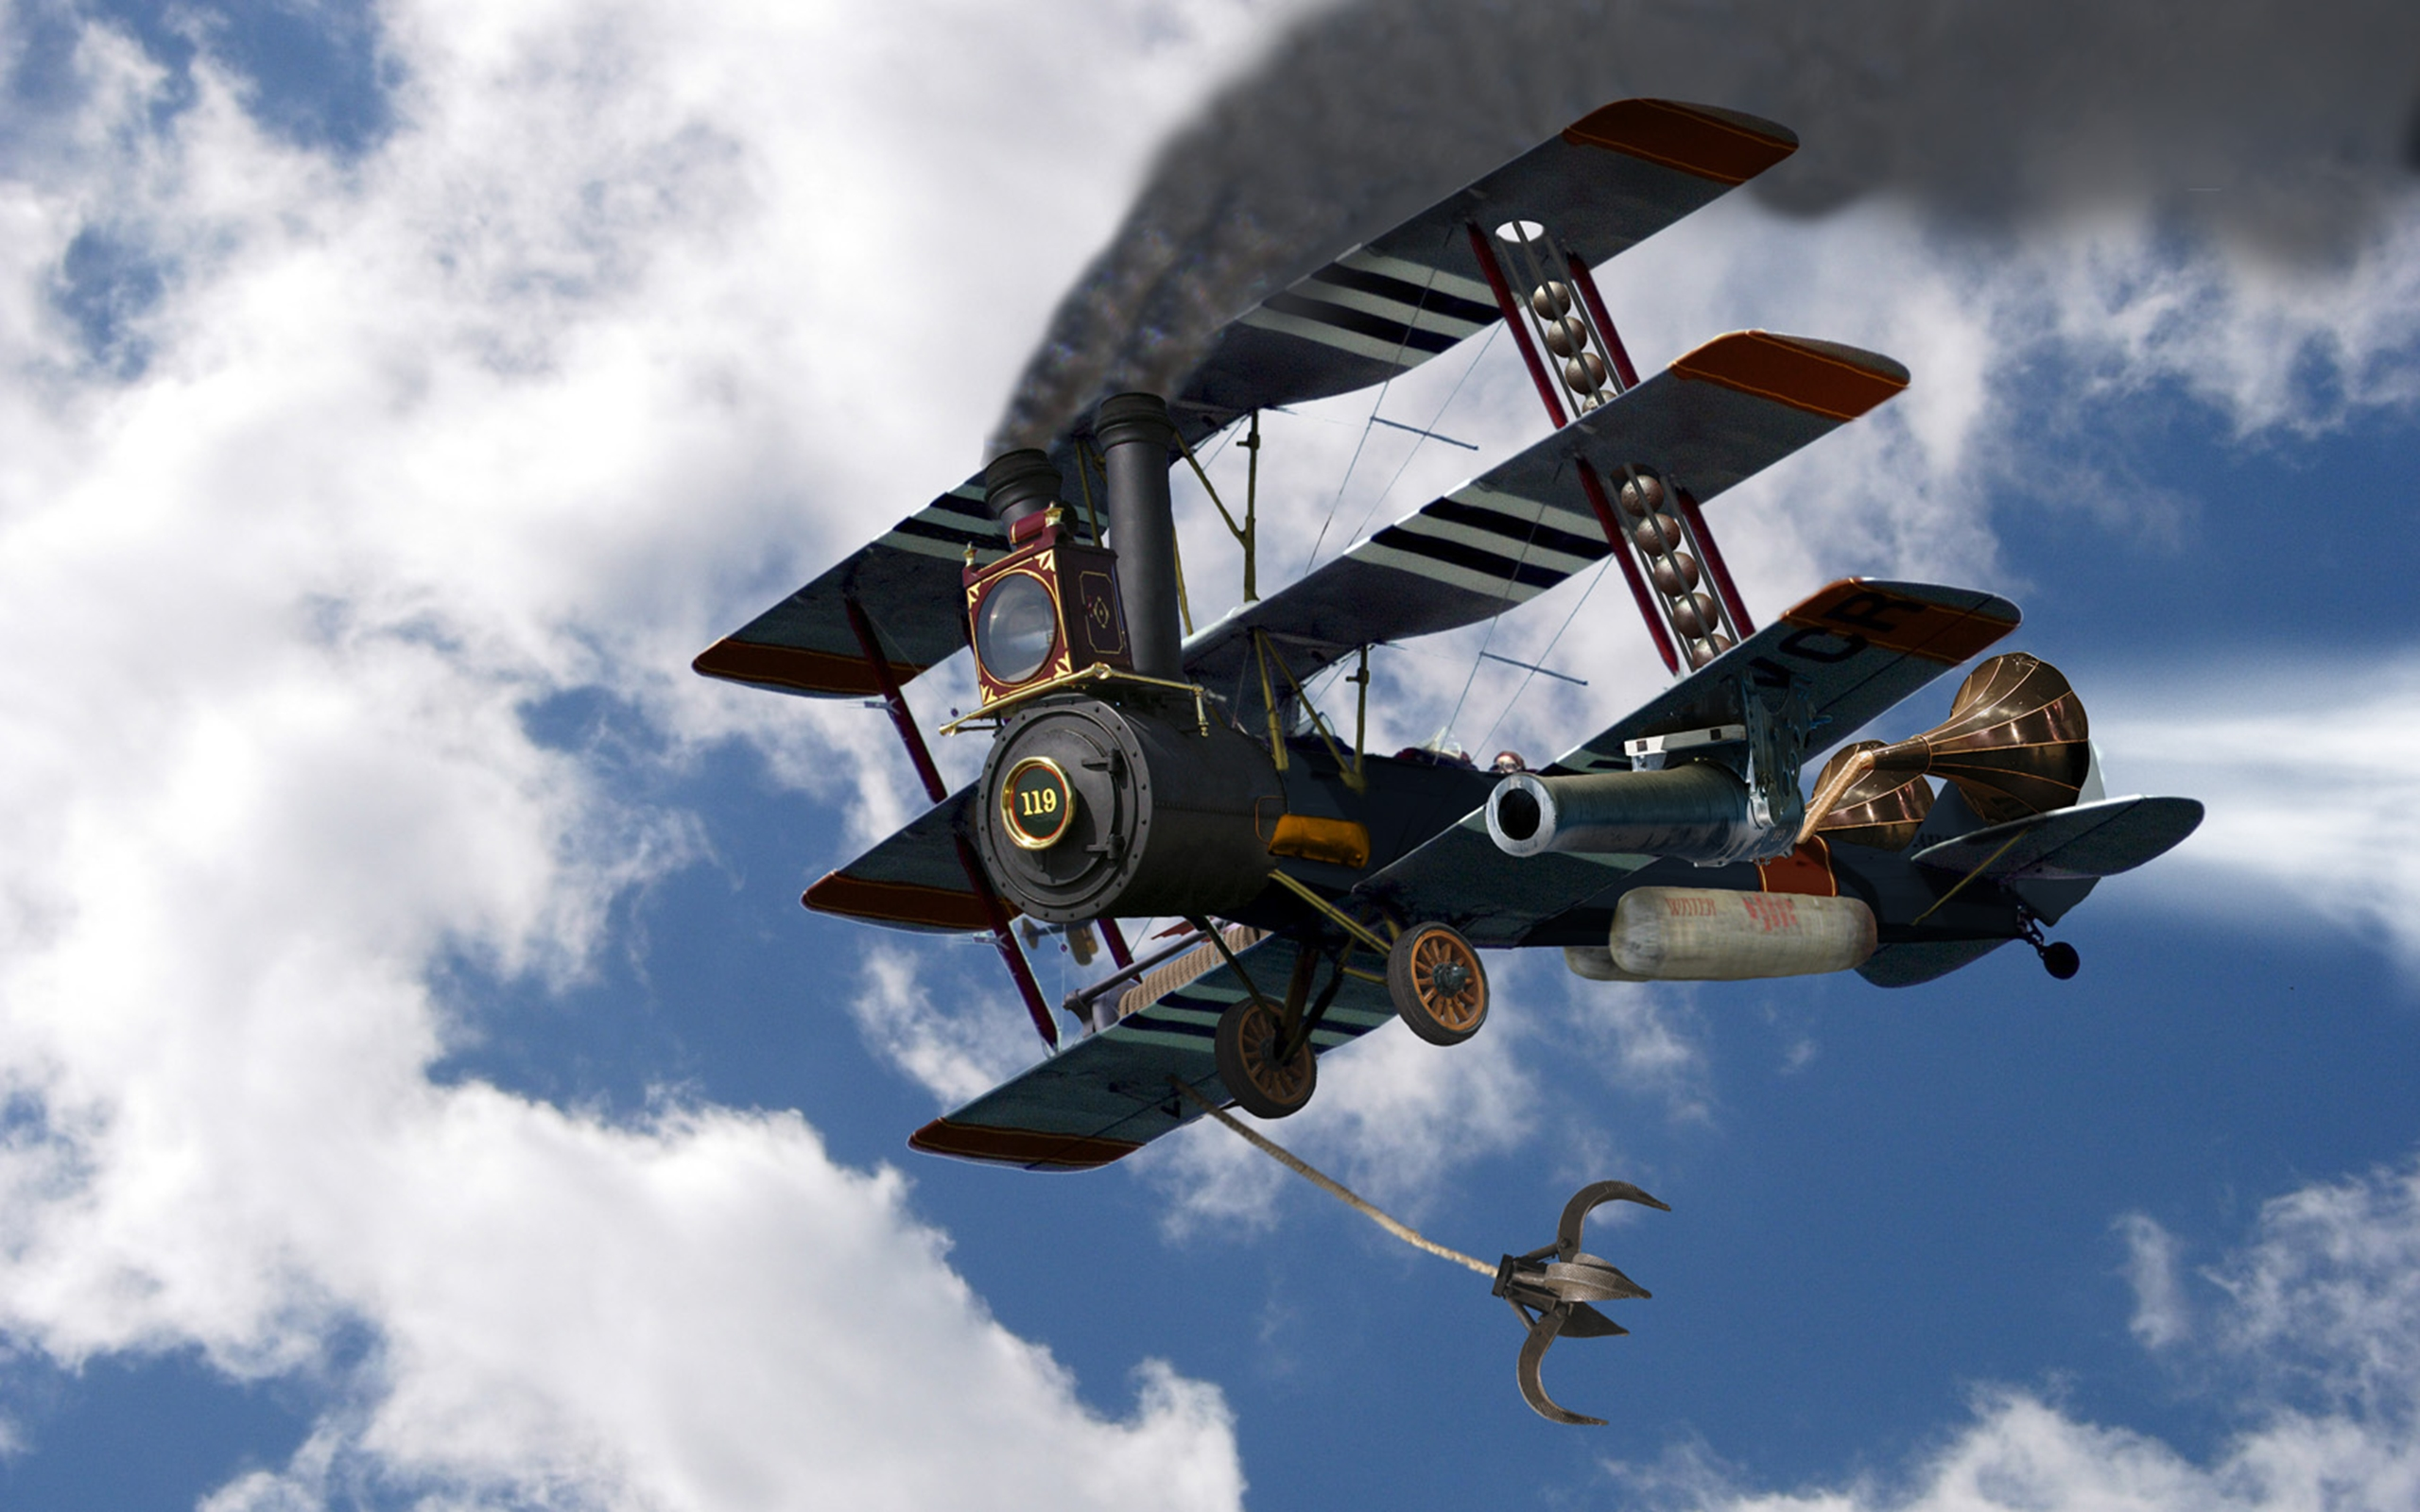 CGI - Aircraft  Unusual Airplane Cgi Fantasy Wallpaper